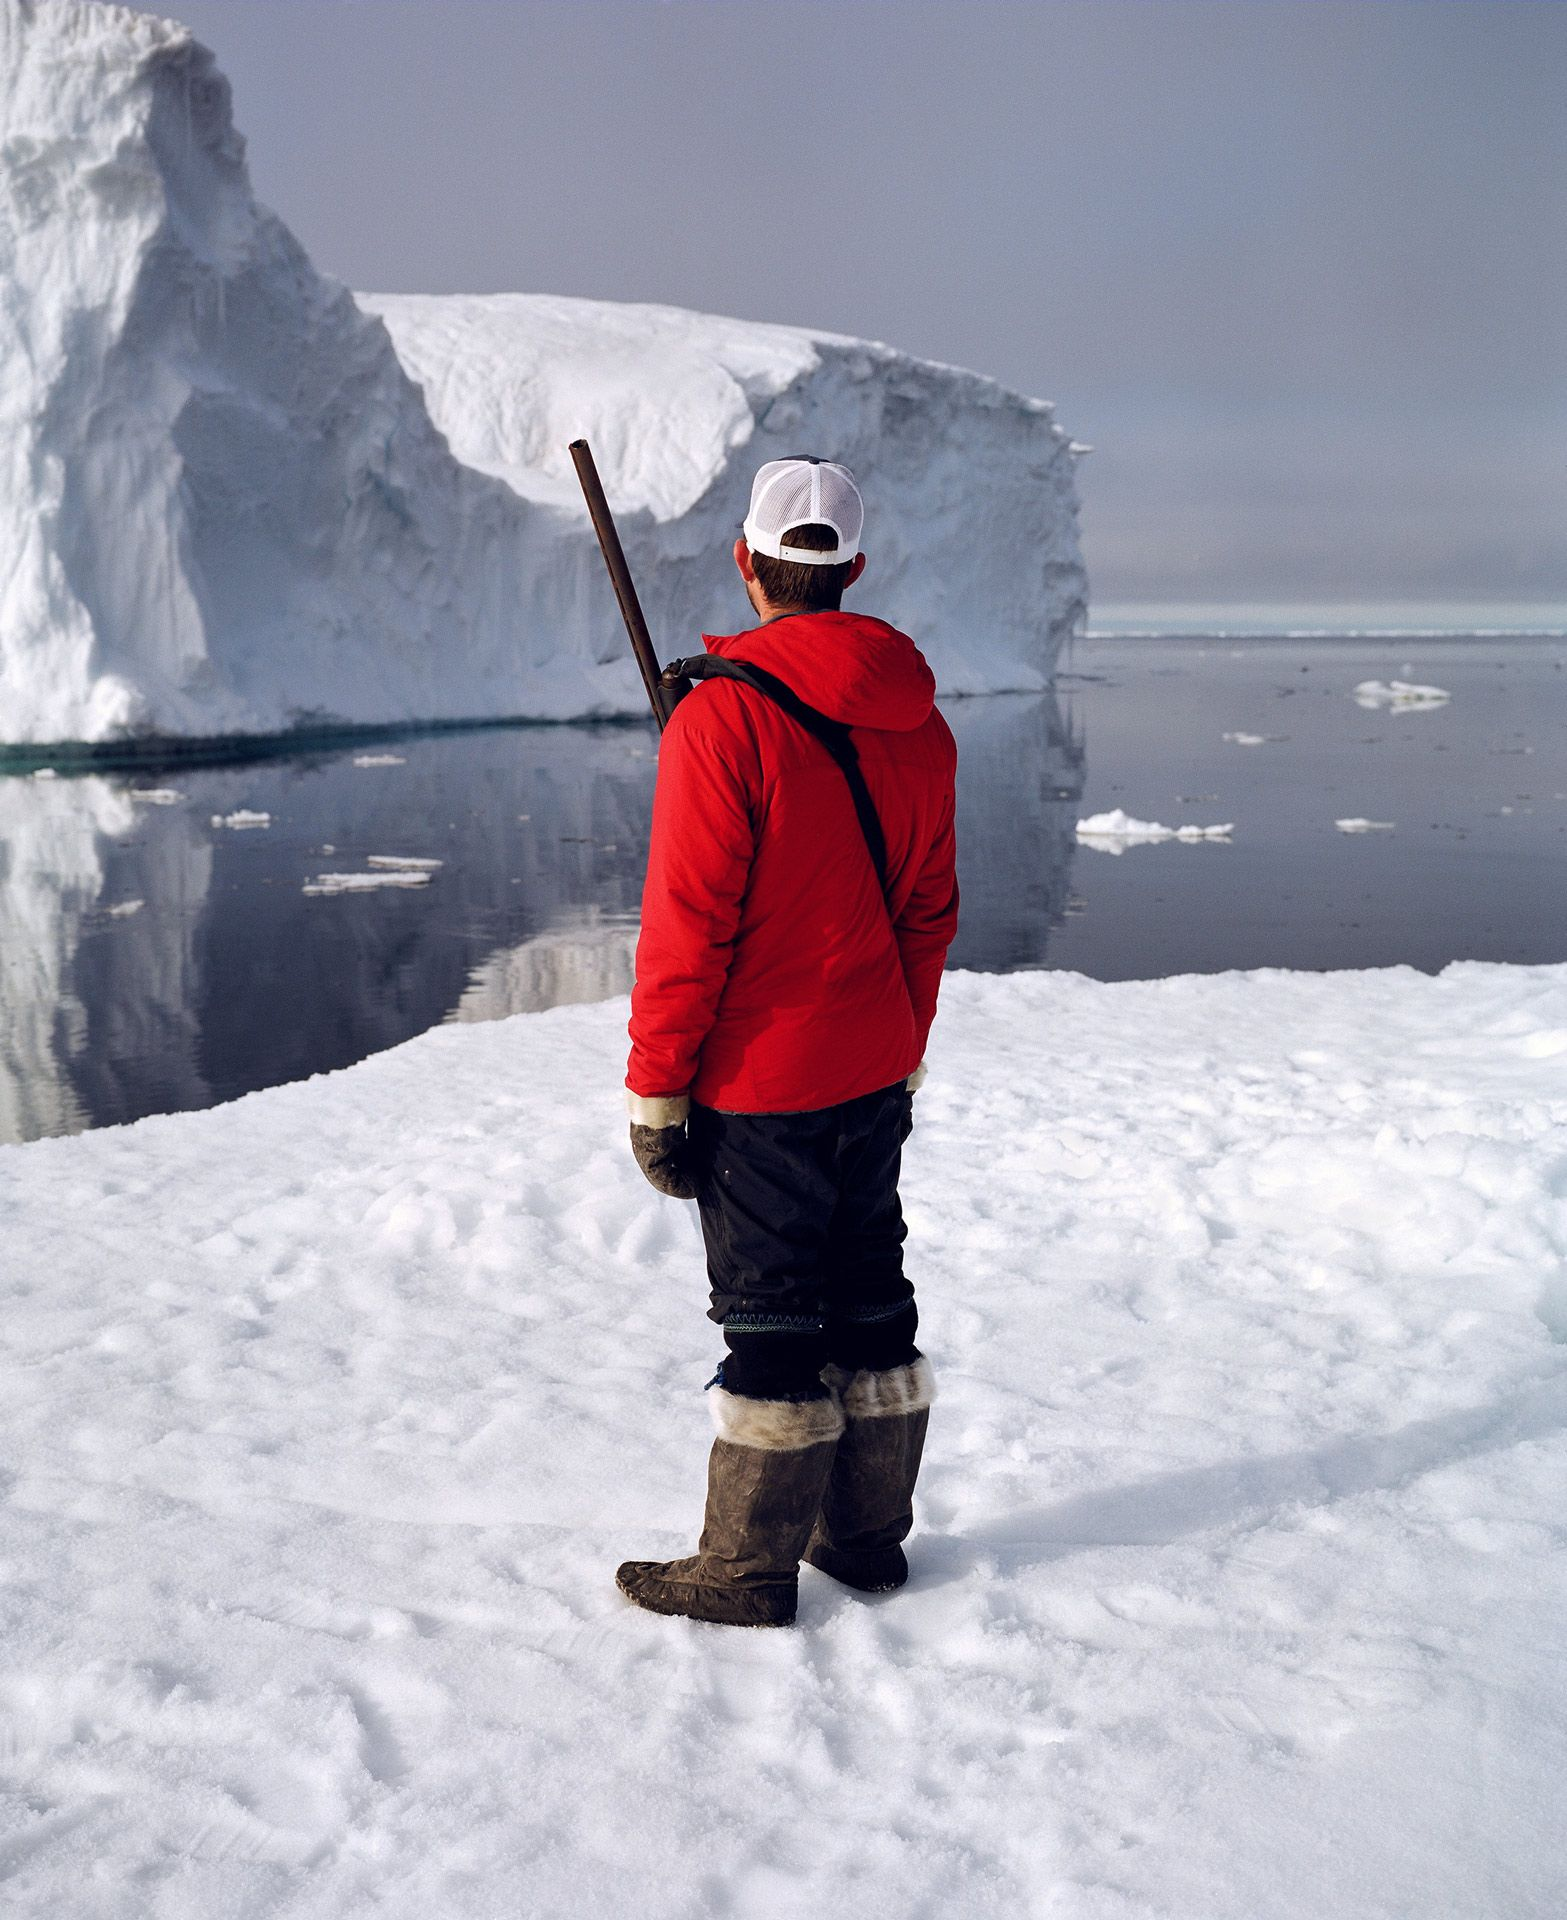 man standing on ice looking out to the horizon wearing red winter coat and a shotgun photographed by Guillaume Simoneau in Pond Inlet for Telegraph magazine